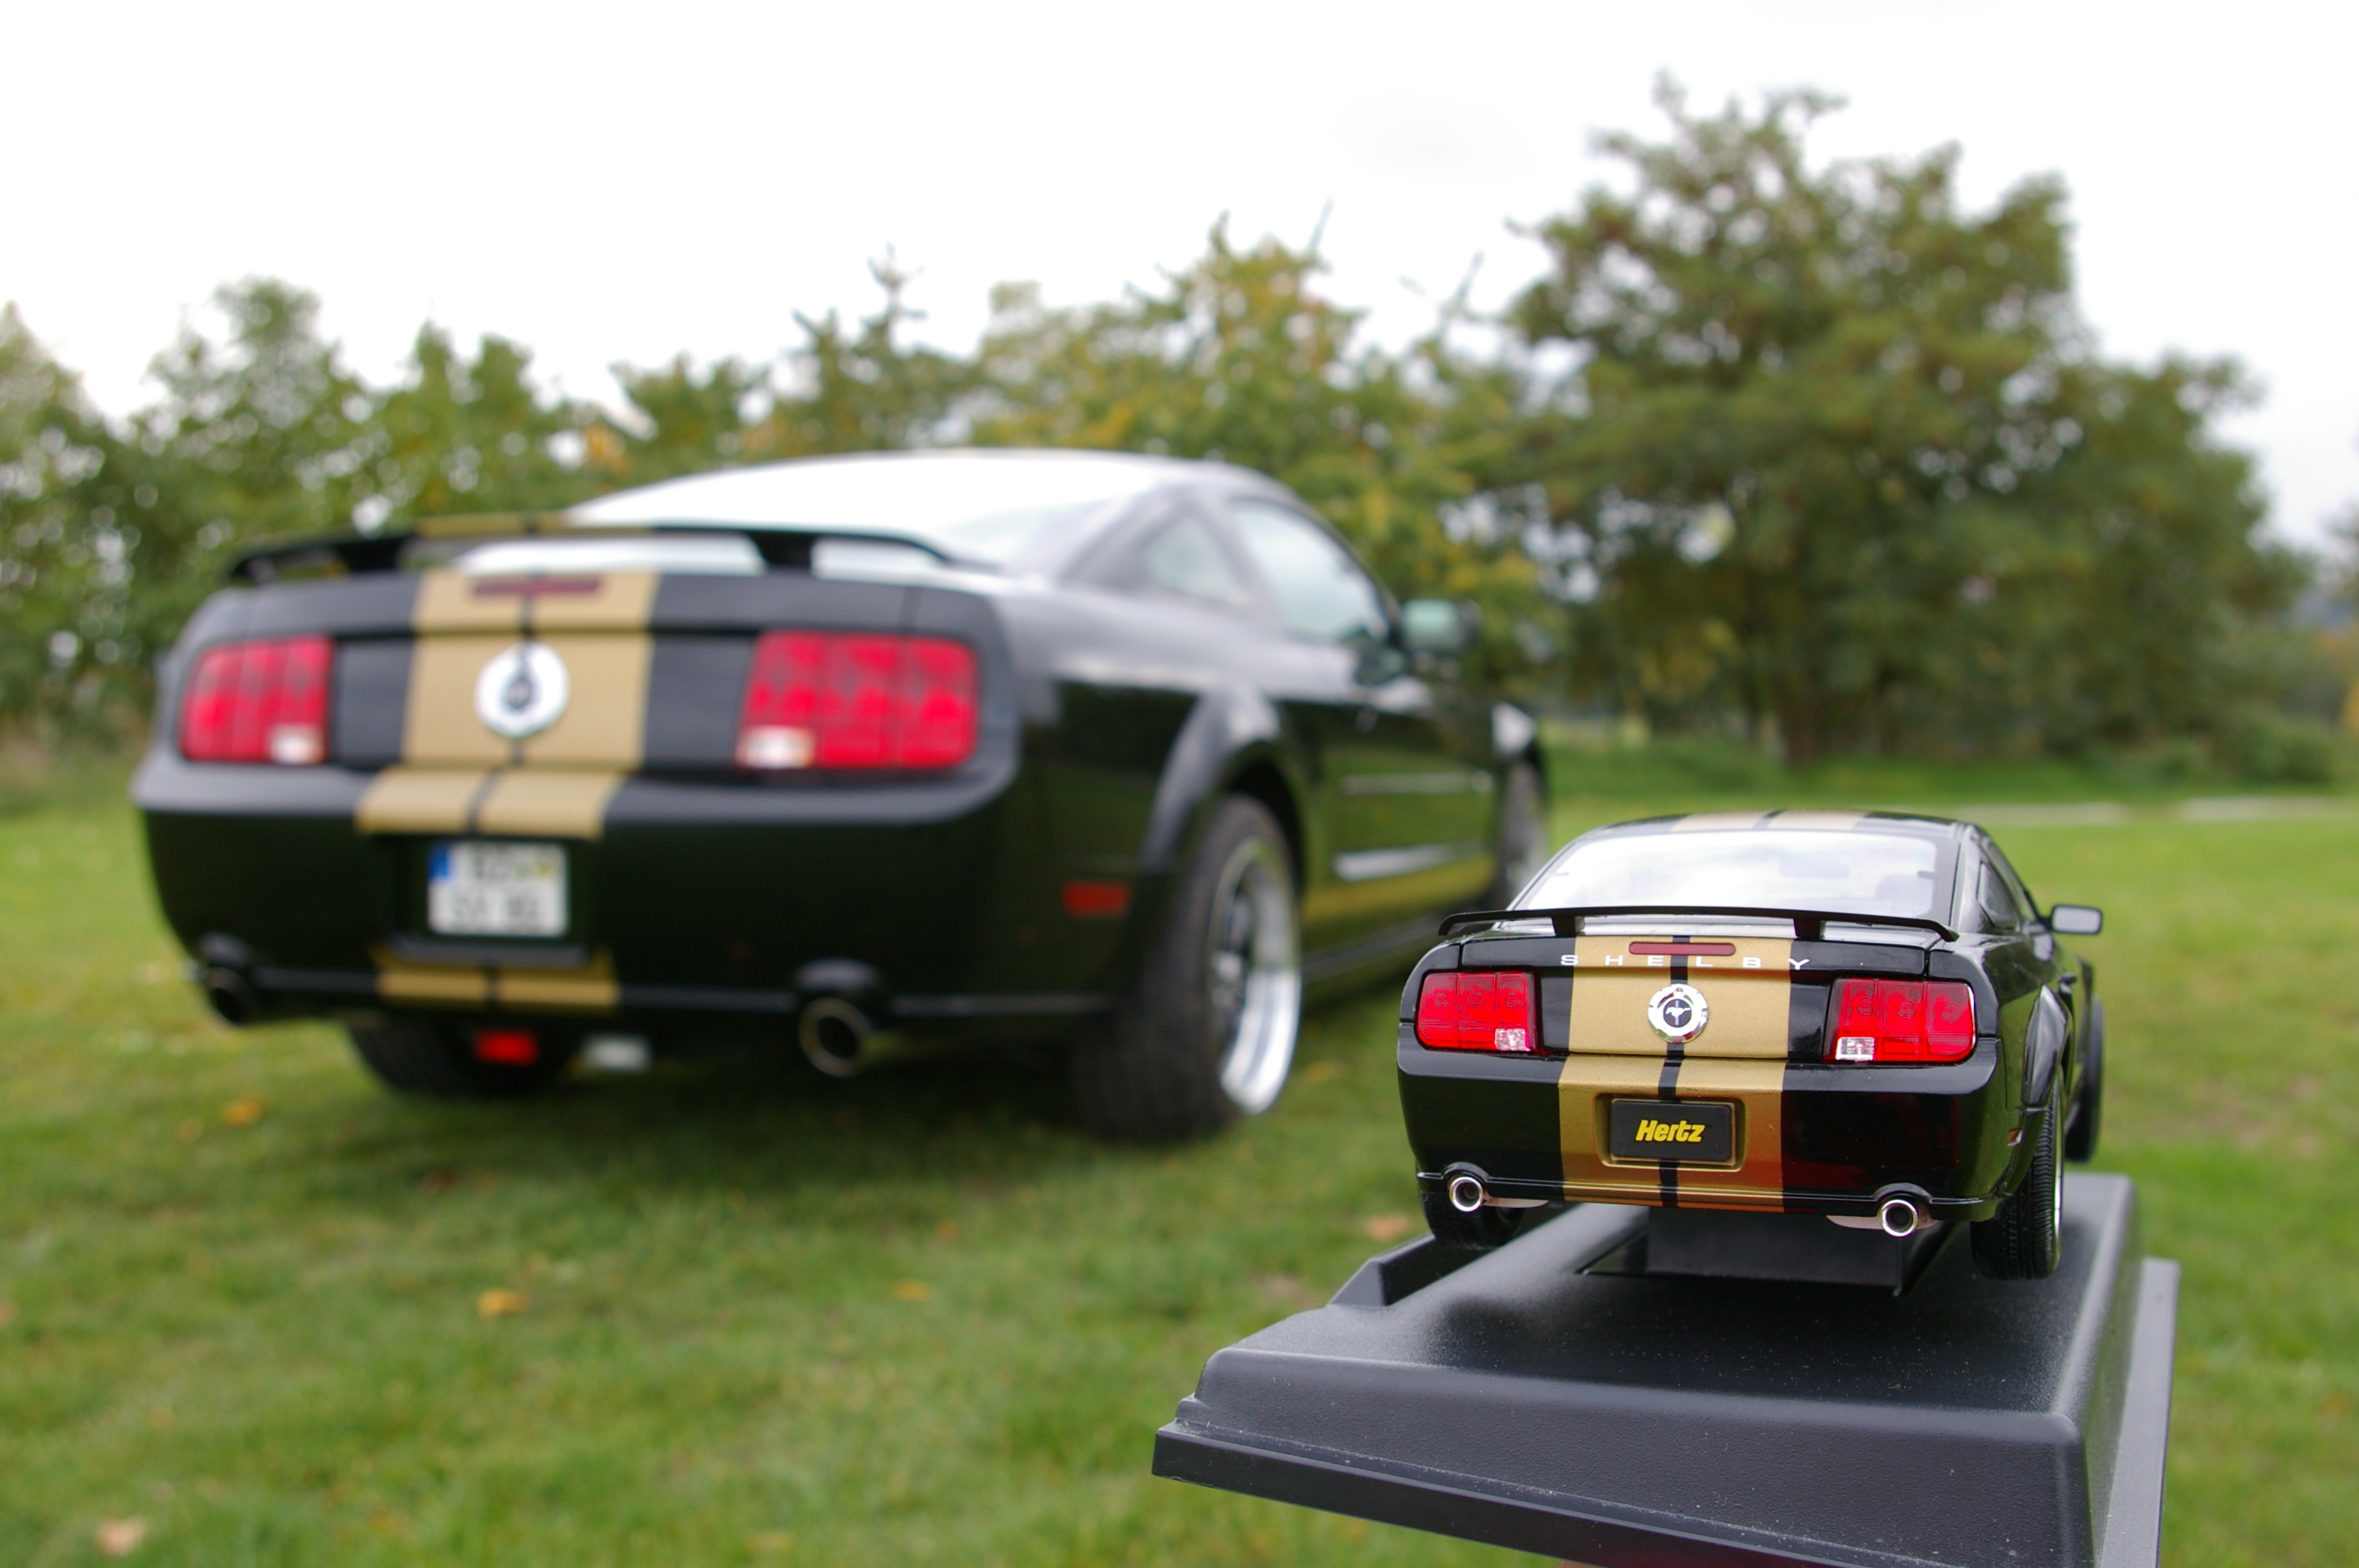 Auto Ford Mustang GT H clone pagenstecher Deine Automeile